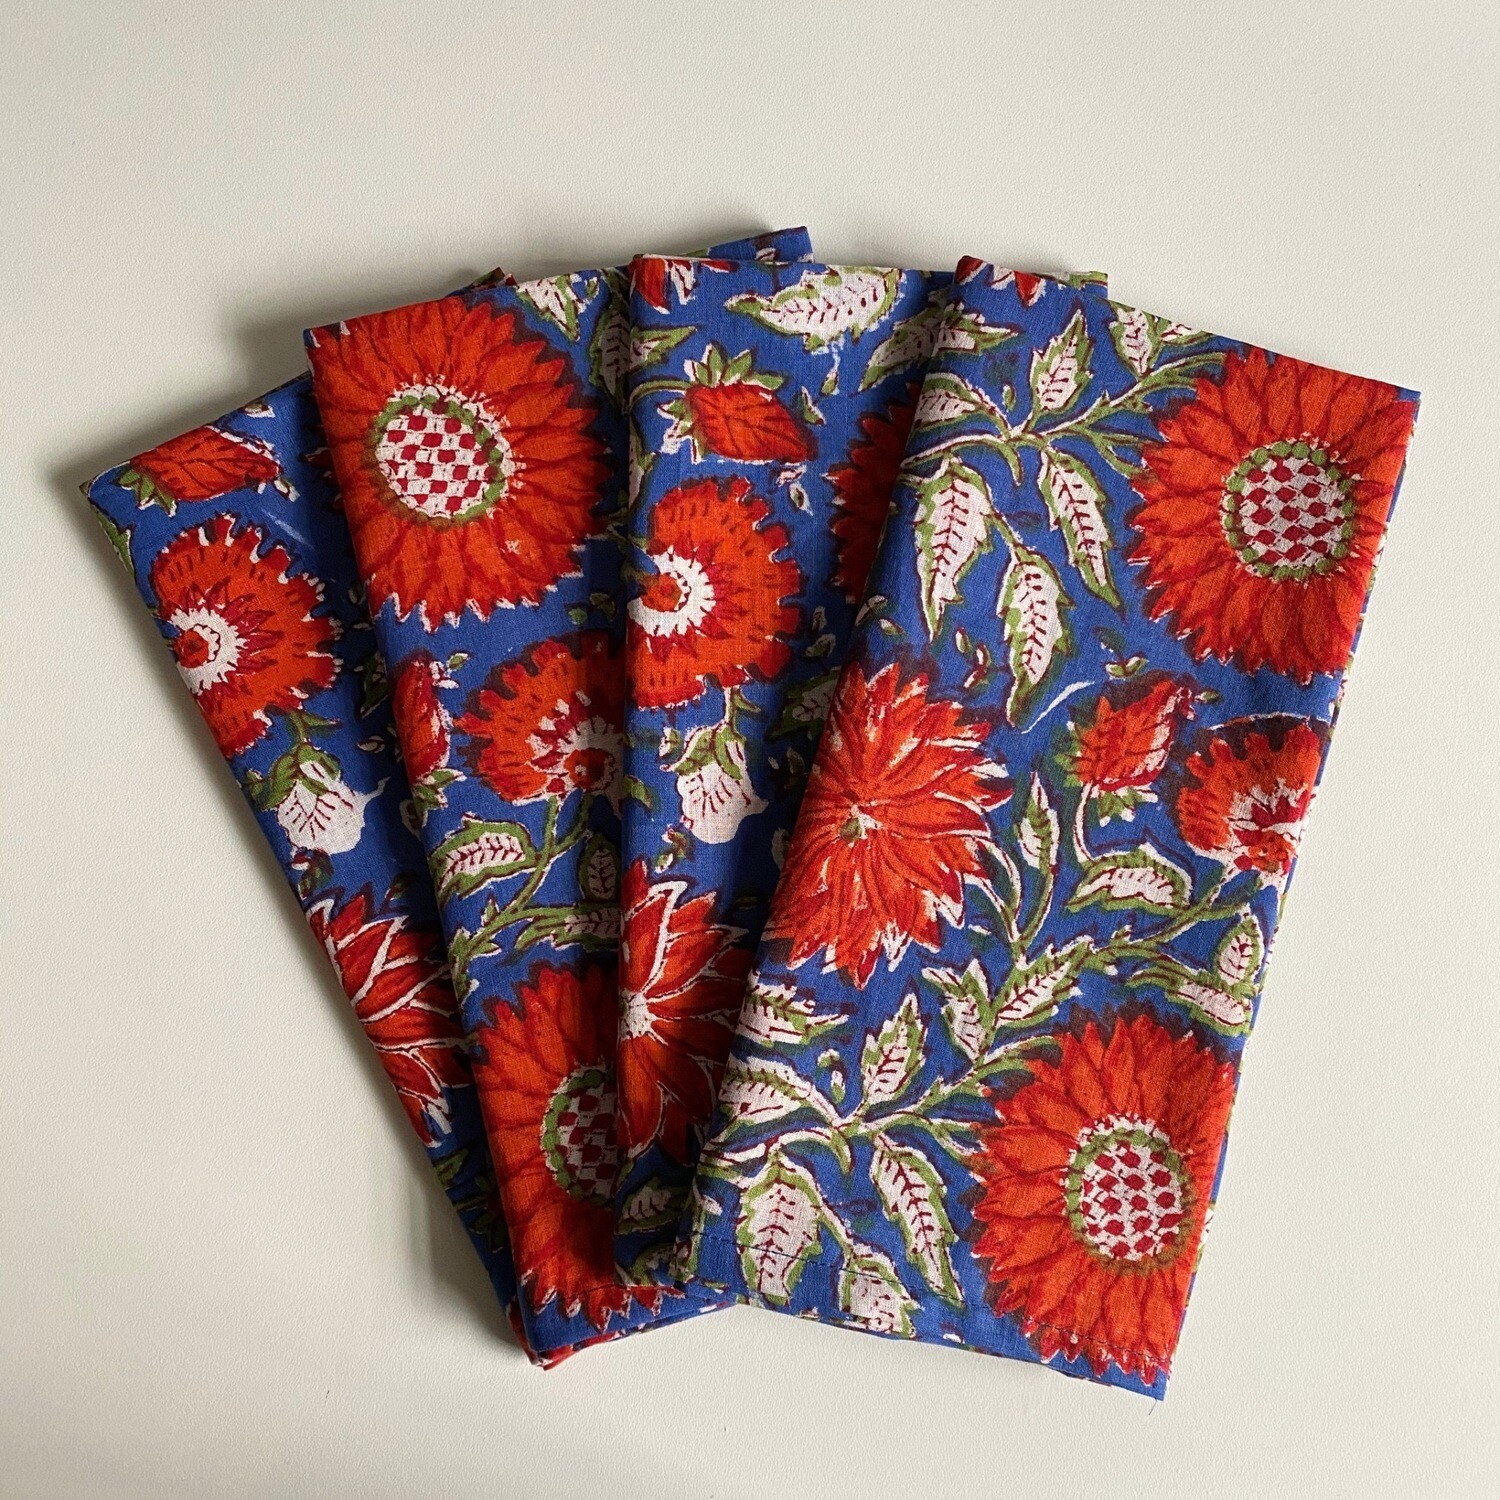 Hand Block Printed Napkins In Midnight Bloom